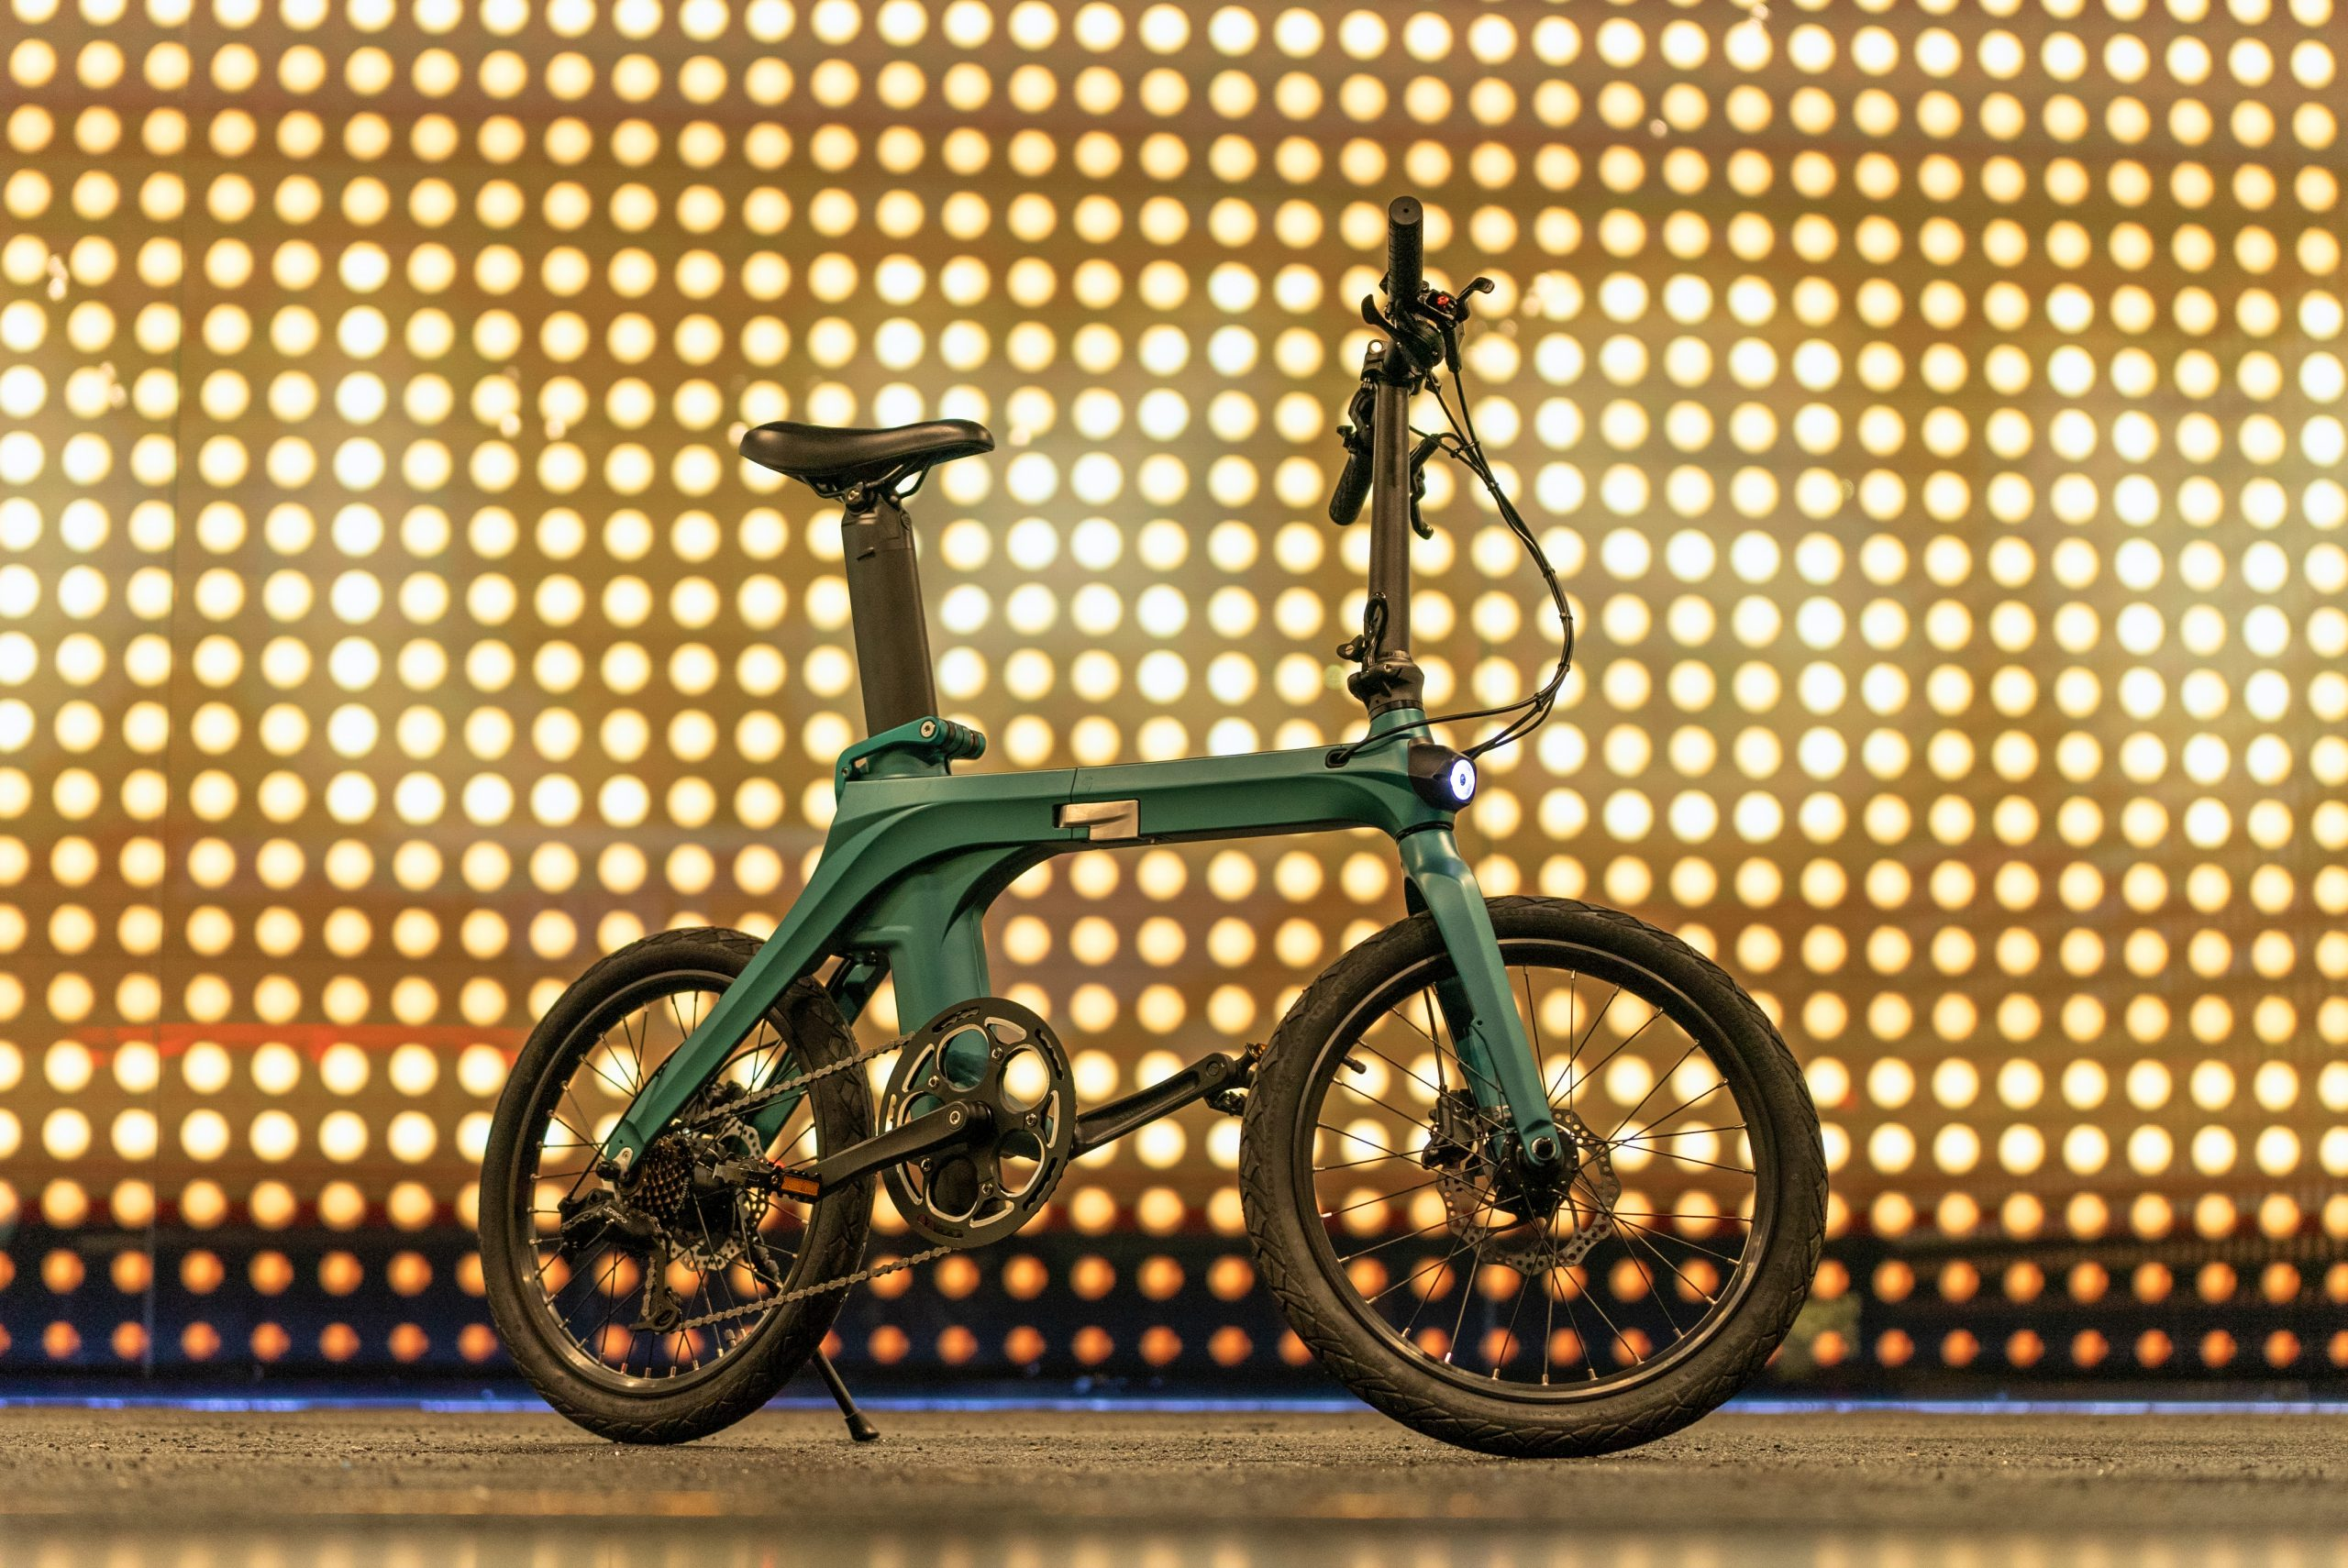 The recent folding electrical bike Fiido X exceeds a million euros on indiegogo